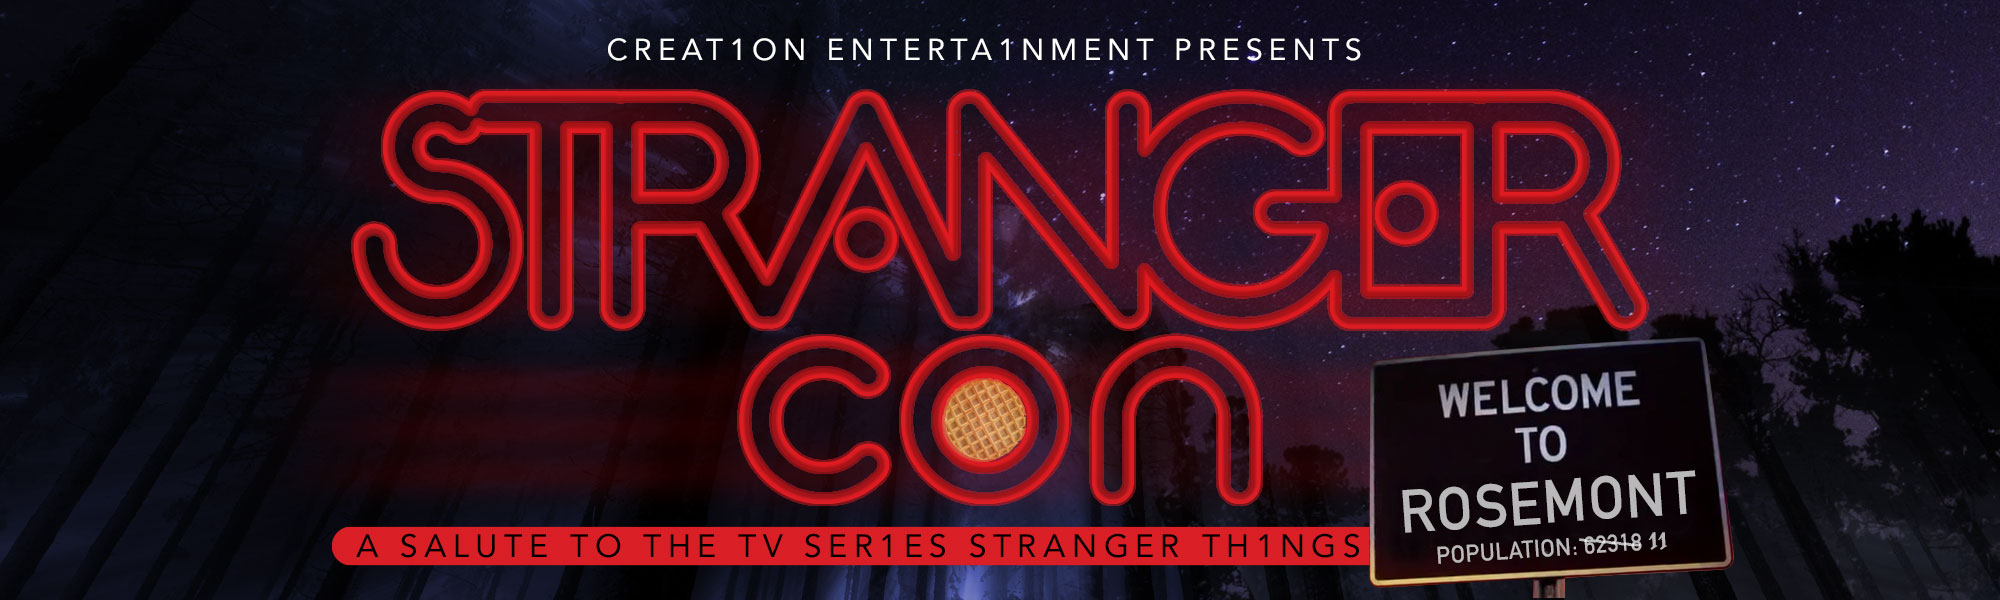 Creation Entertainment presents STRANGER CON a salute to the